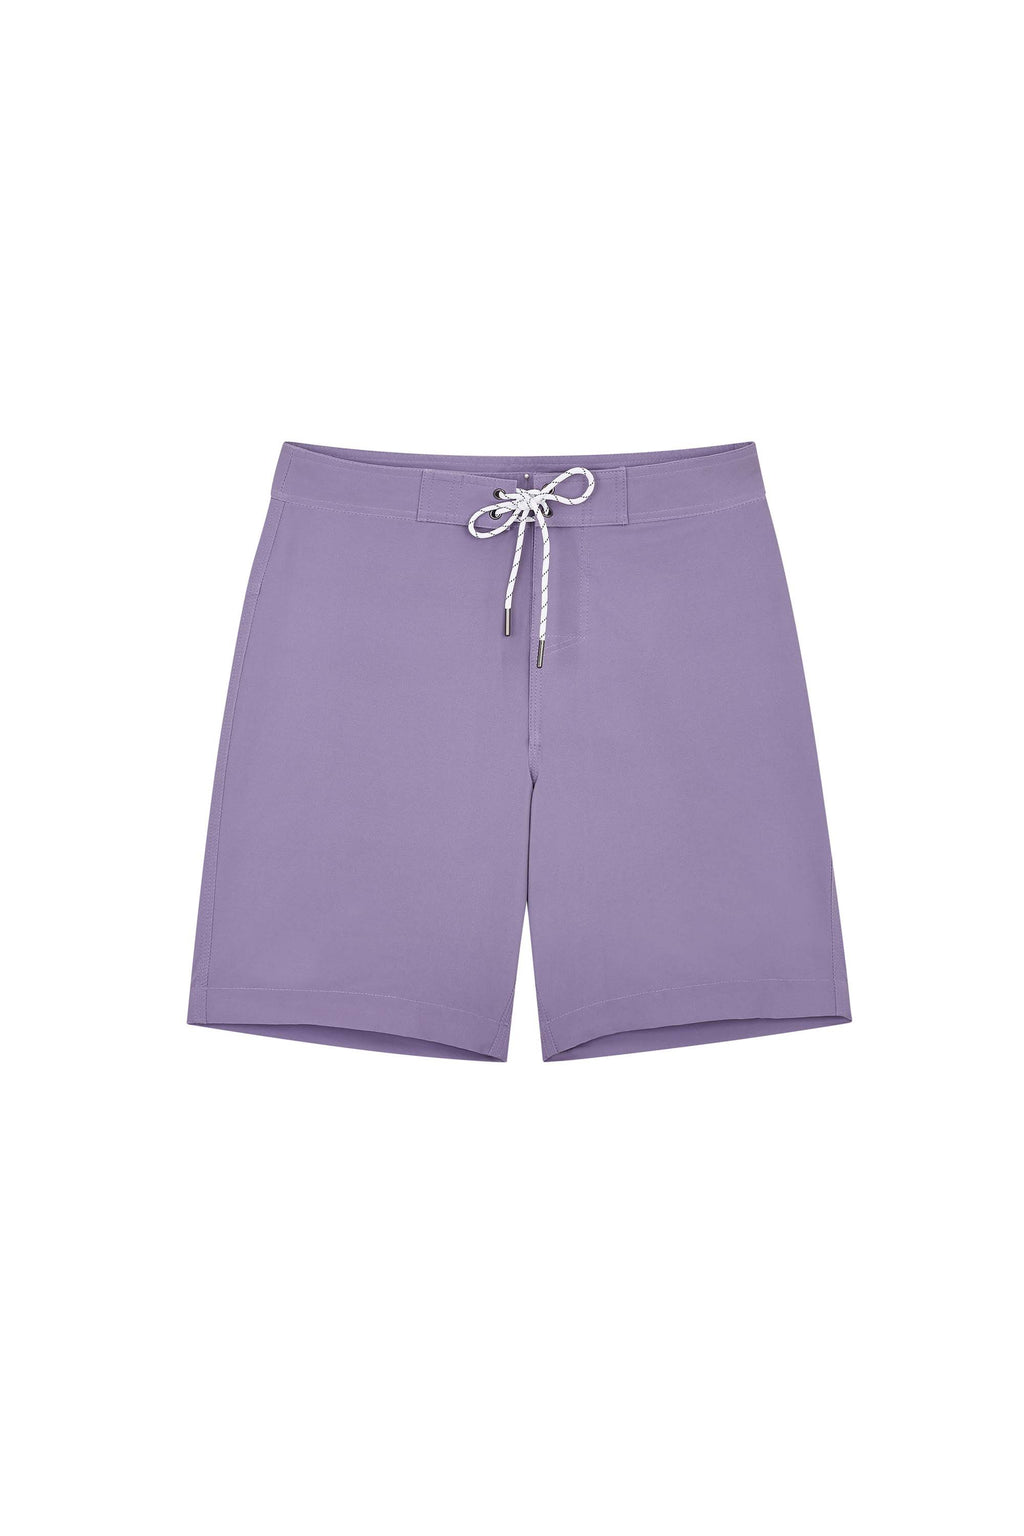 "Eddie Board Short 19"" - Dusty Lavender"